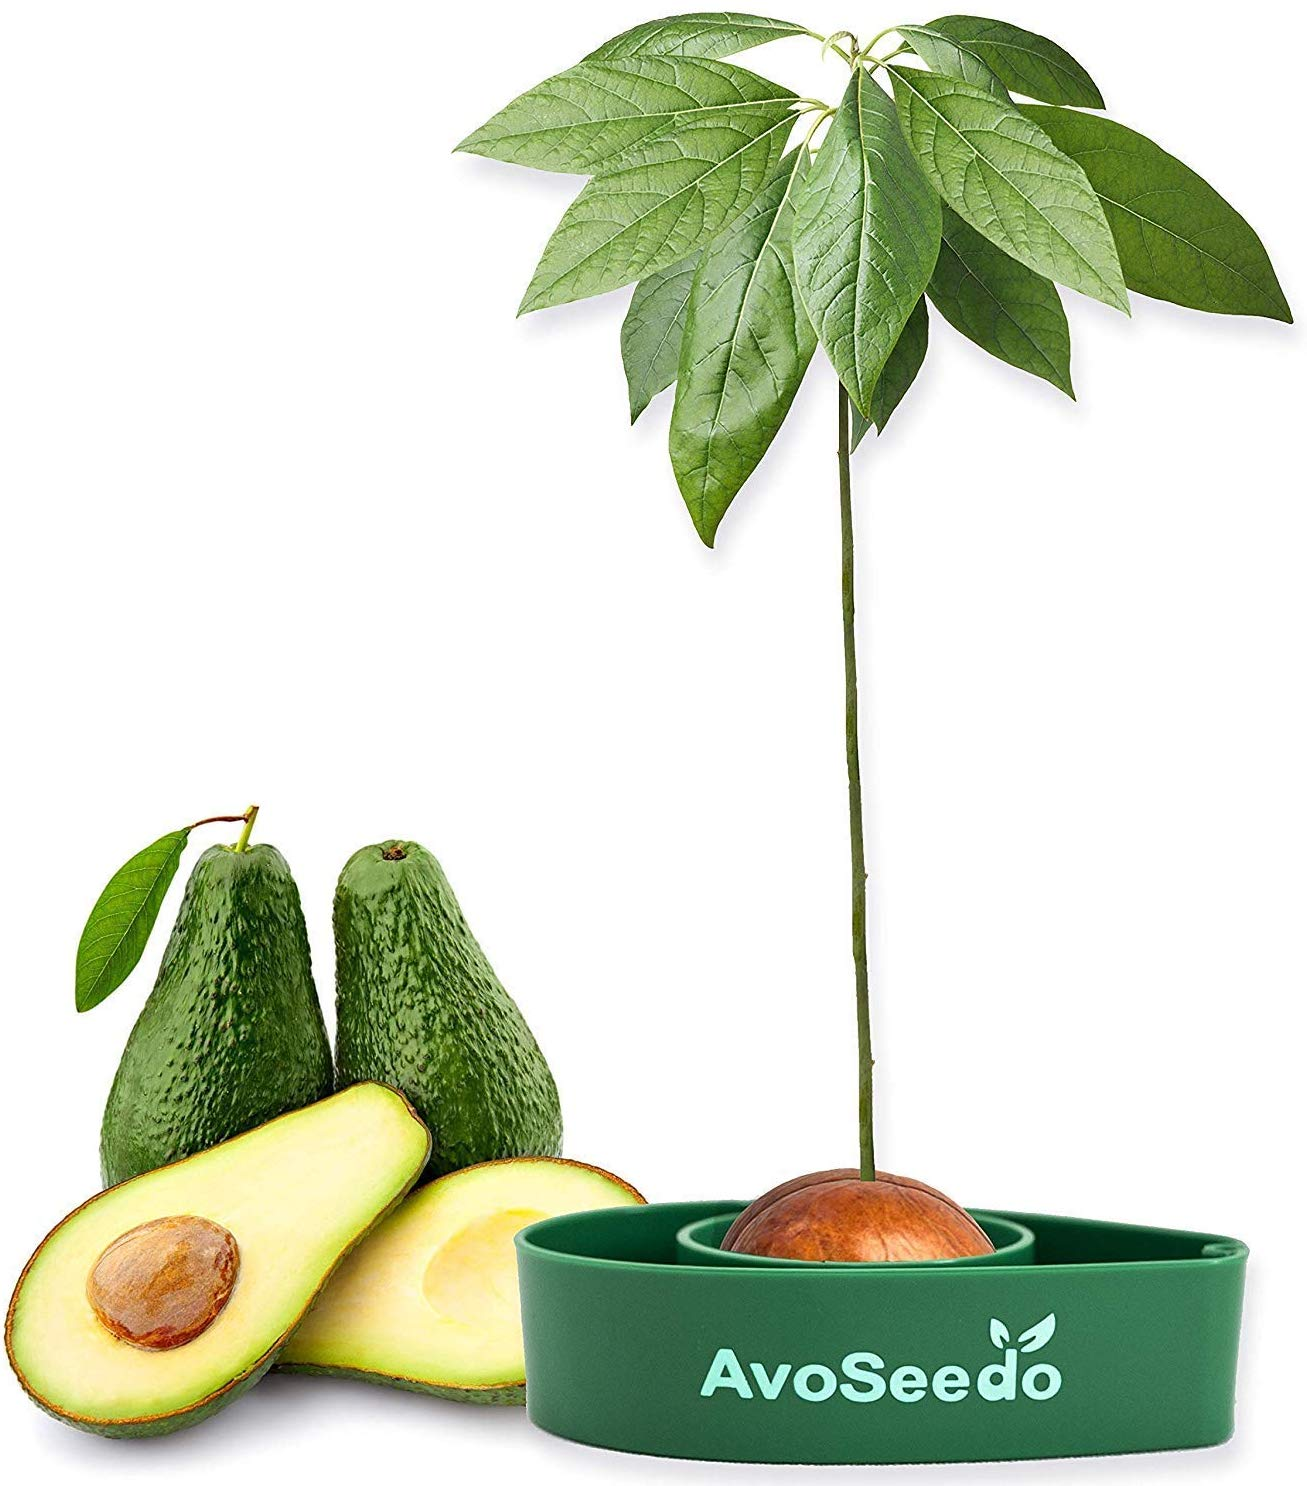 Grow Your Own Avocado Tree £11.99